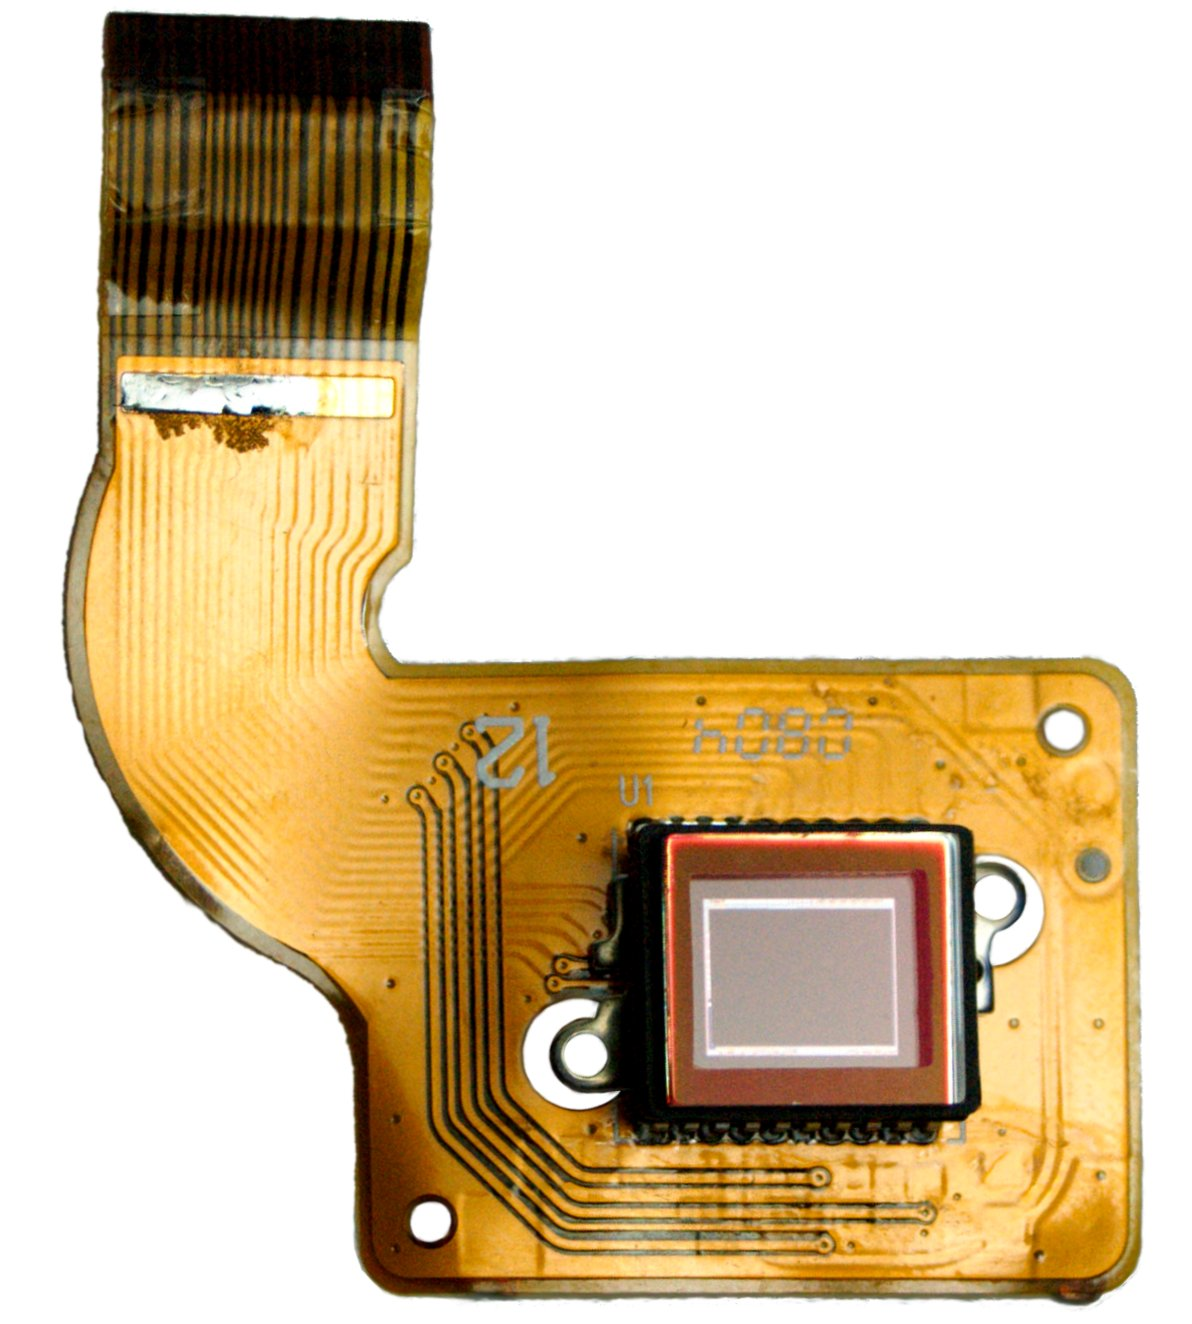 Image Sensor Wikipedia Light Dependant Resistor Forms The Base Of This Module Circuit